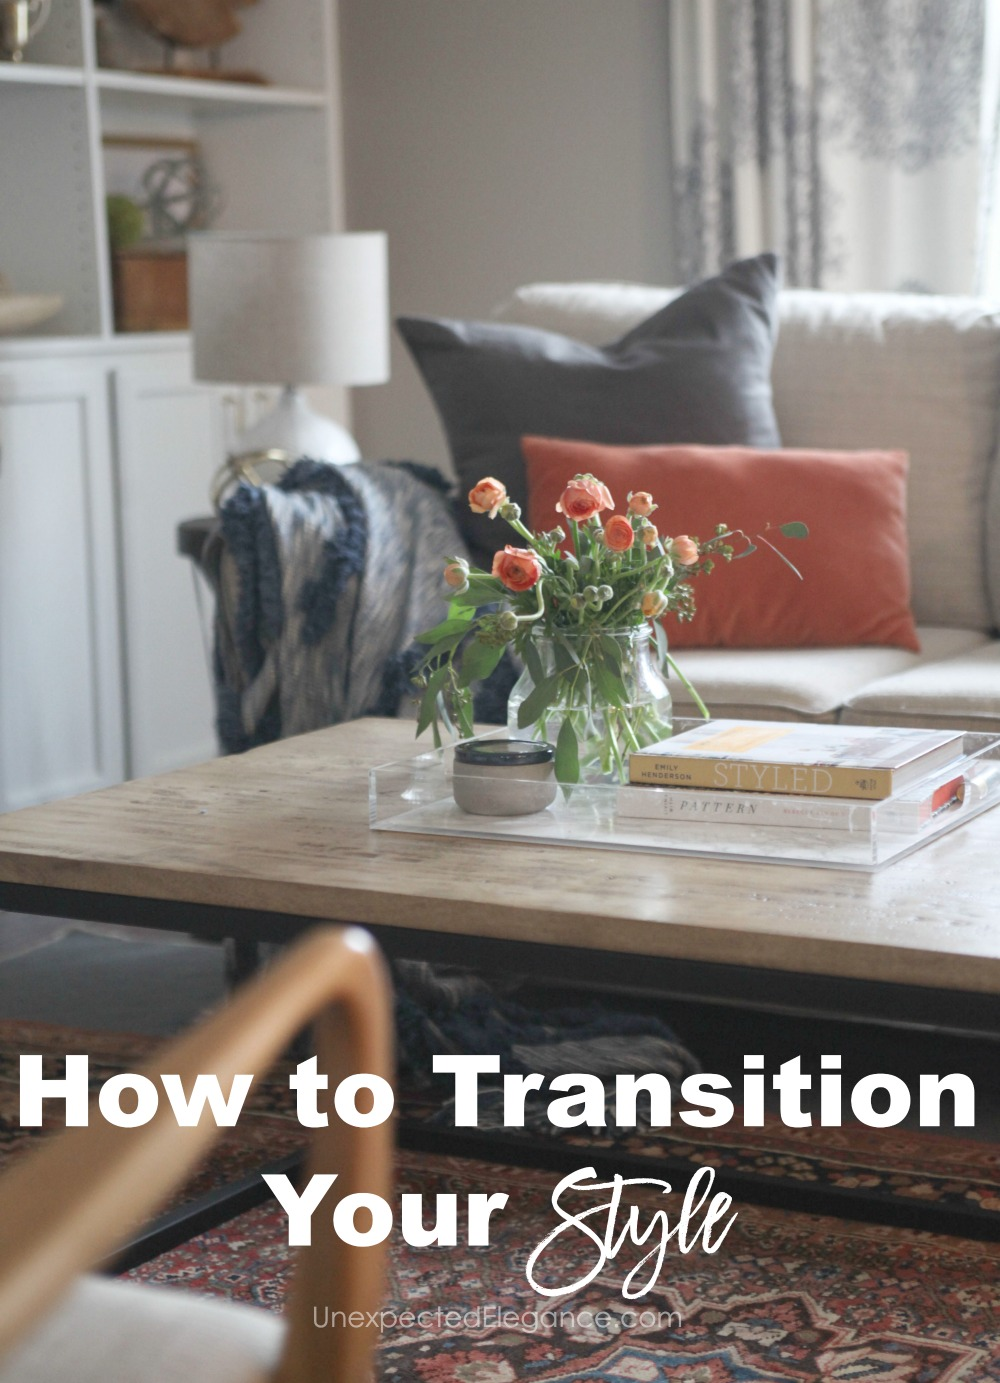 Get some tips and tricks for how to transition your style when your taste has changed. Practical ways to spend less and get the look you want.